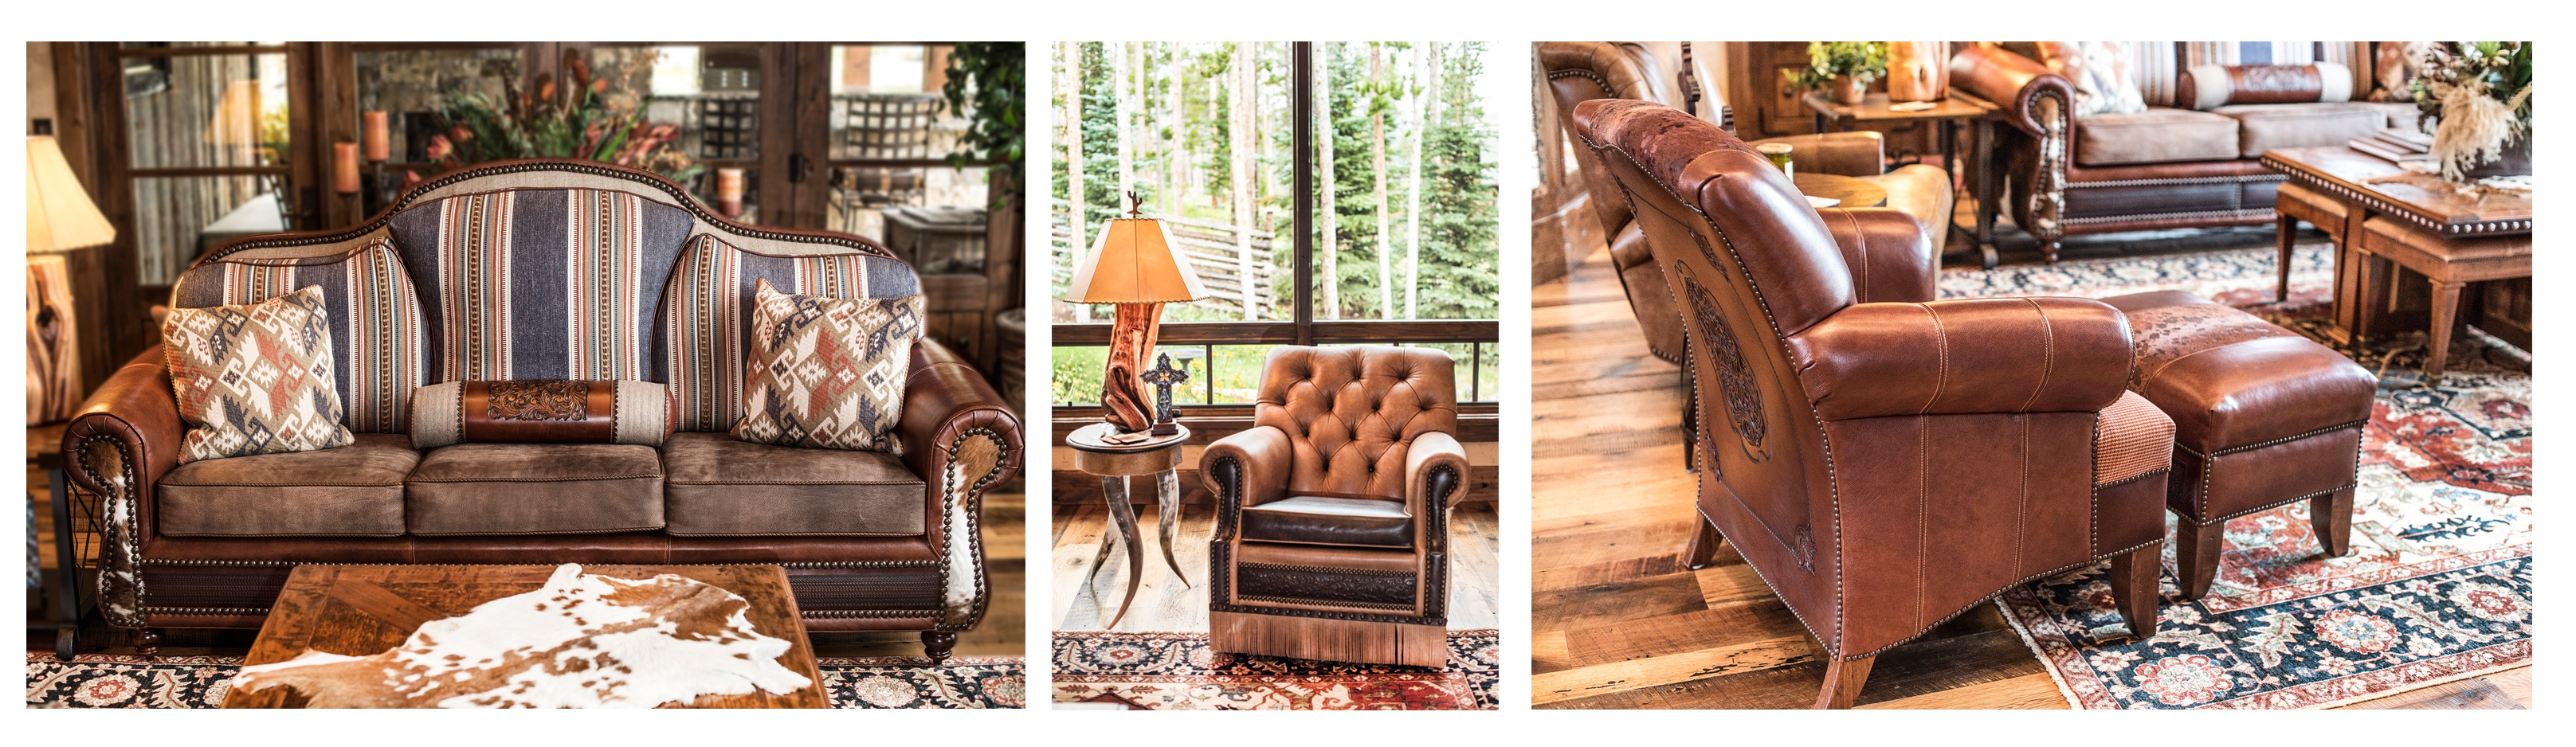 rustic_interior_design_thescarabrugs.jpg